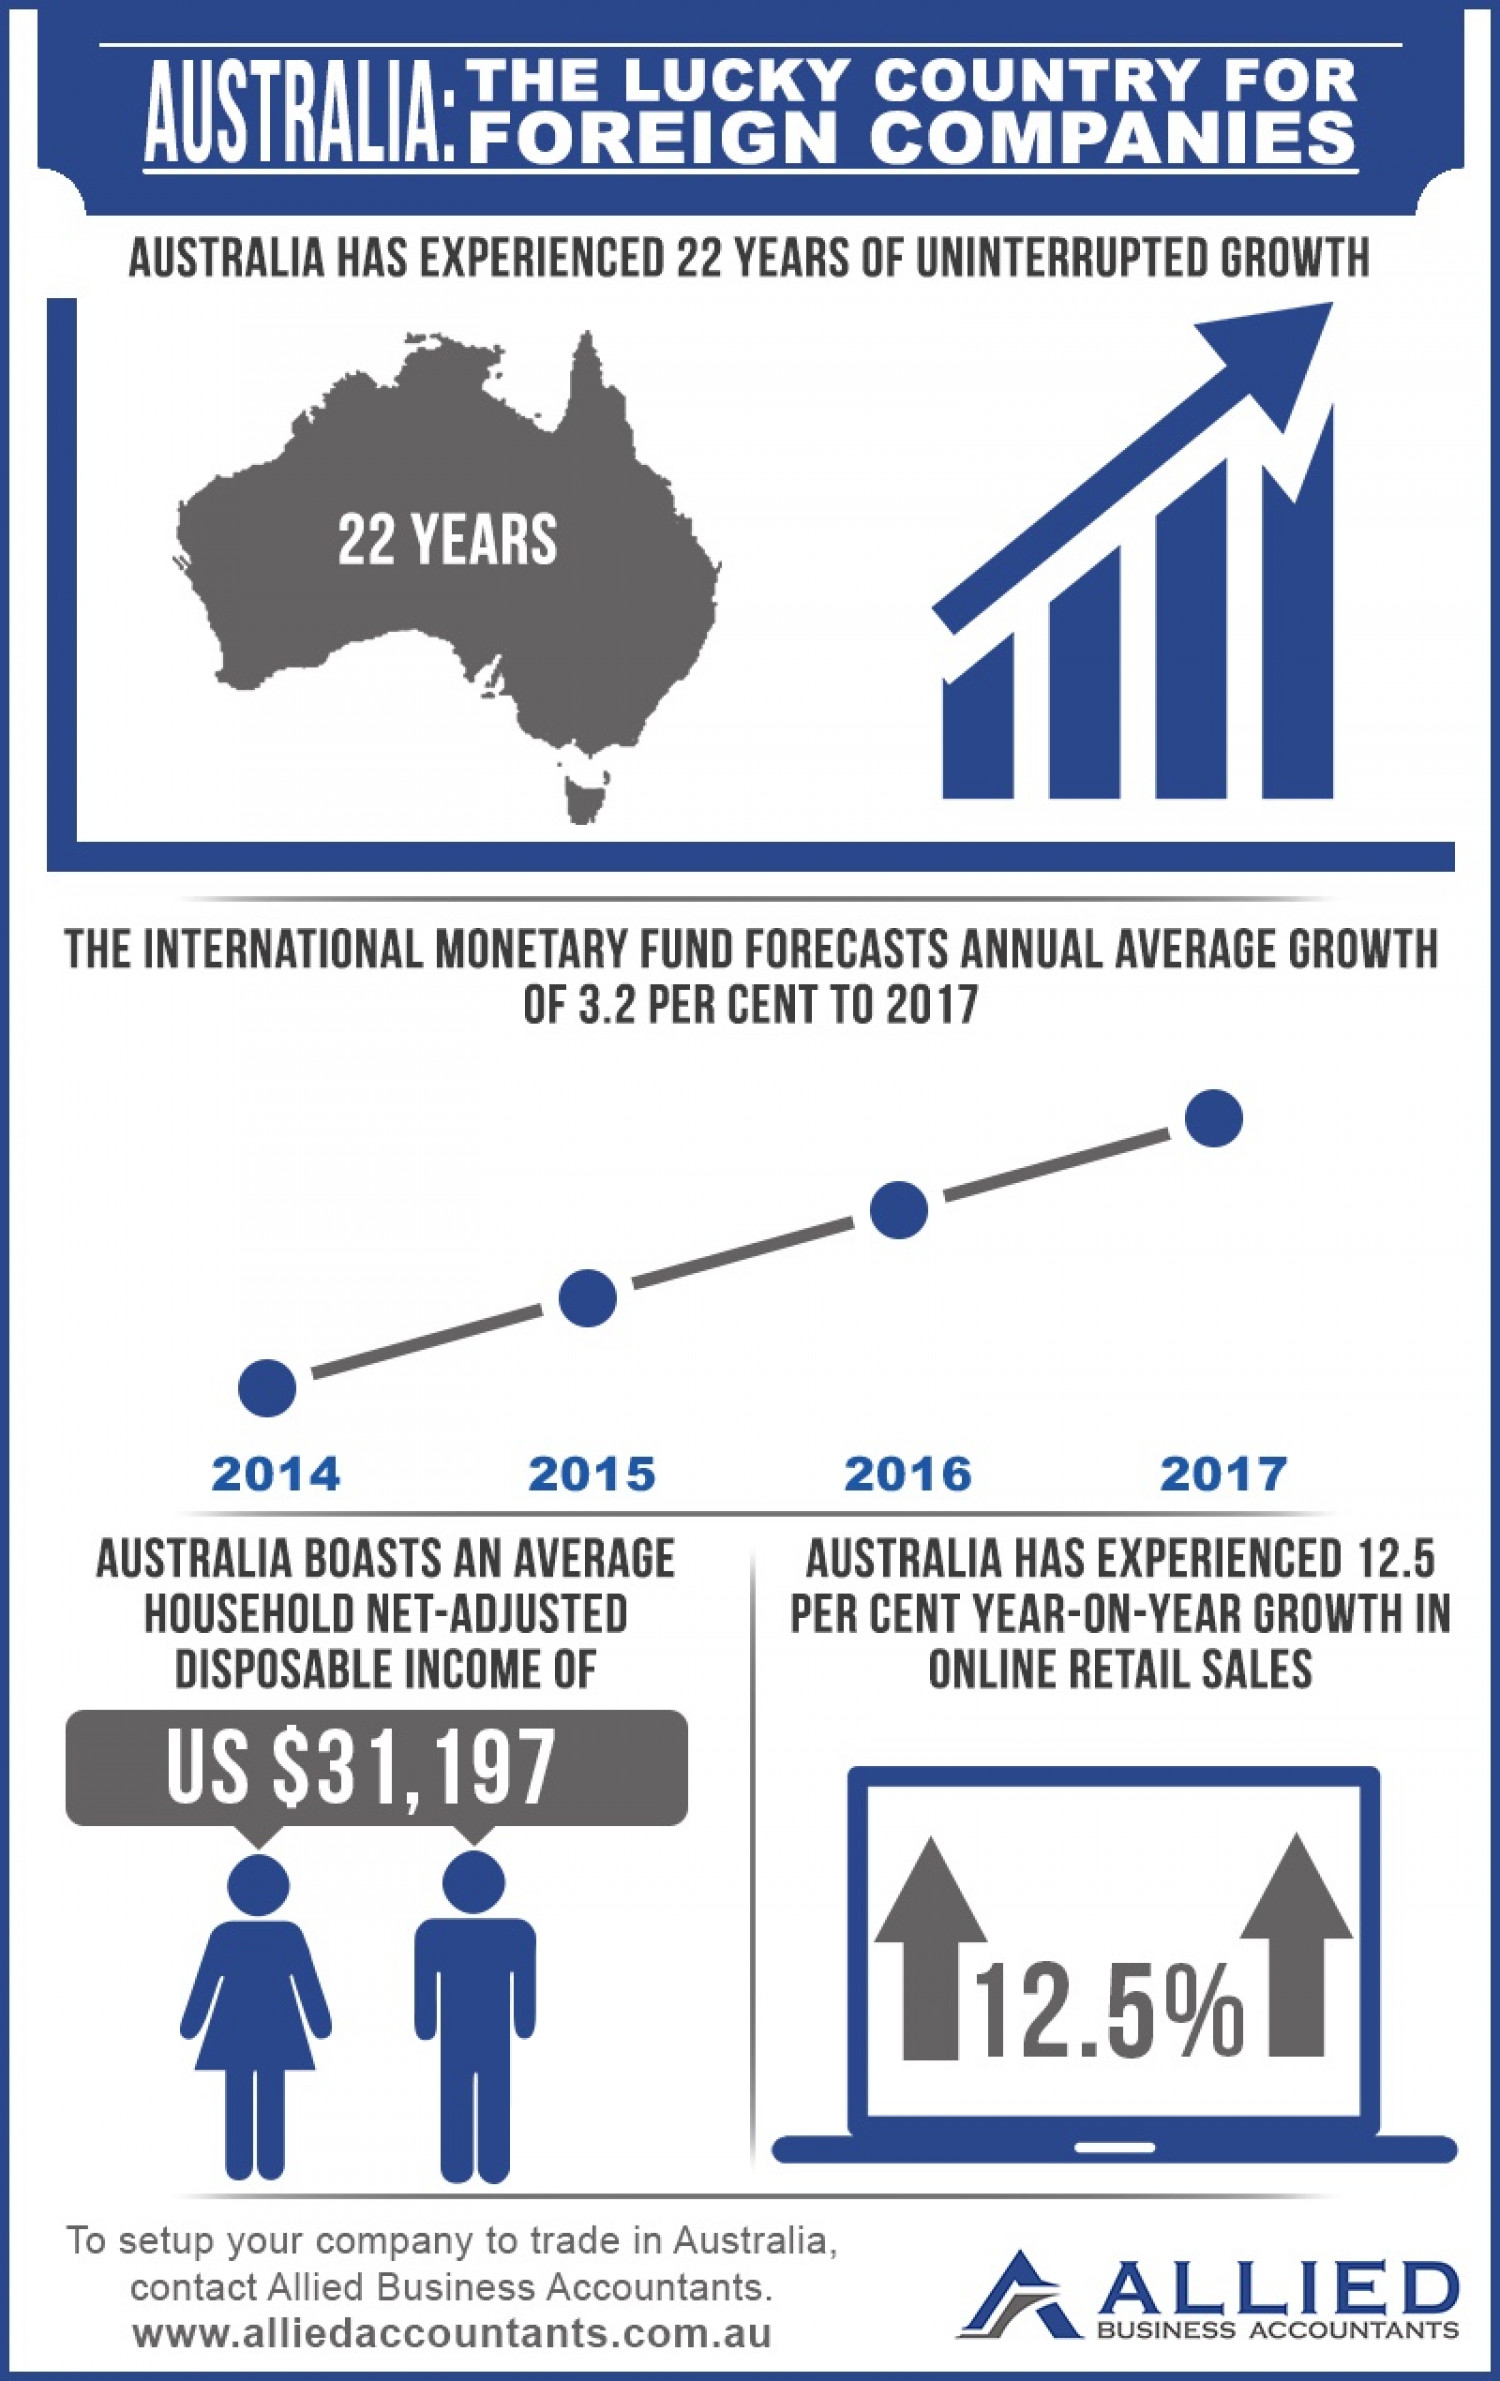 Australia: The Lucky Country for Foreign Companies Infographic